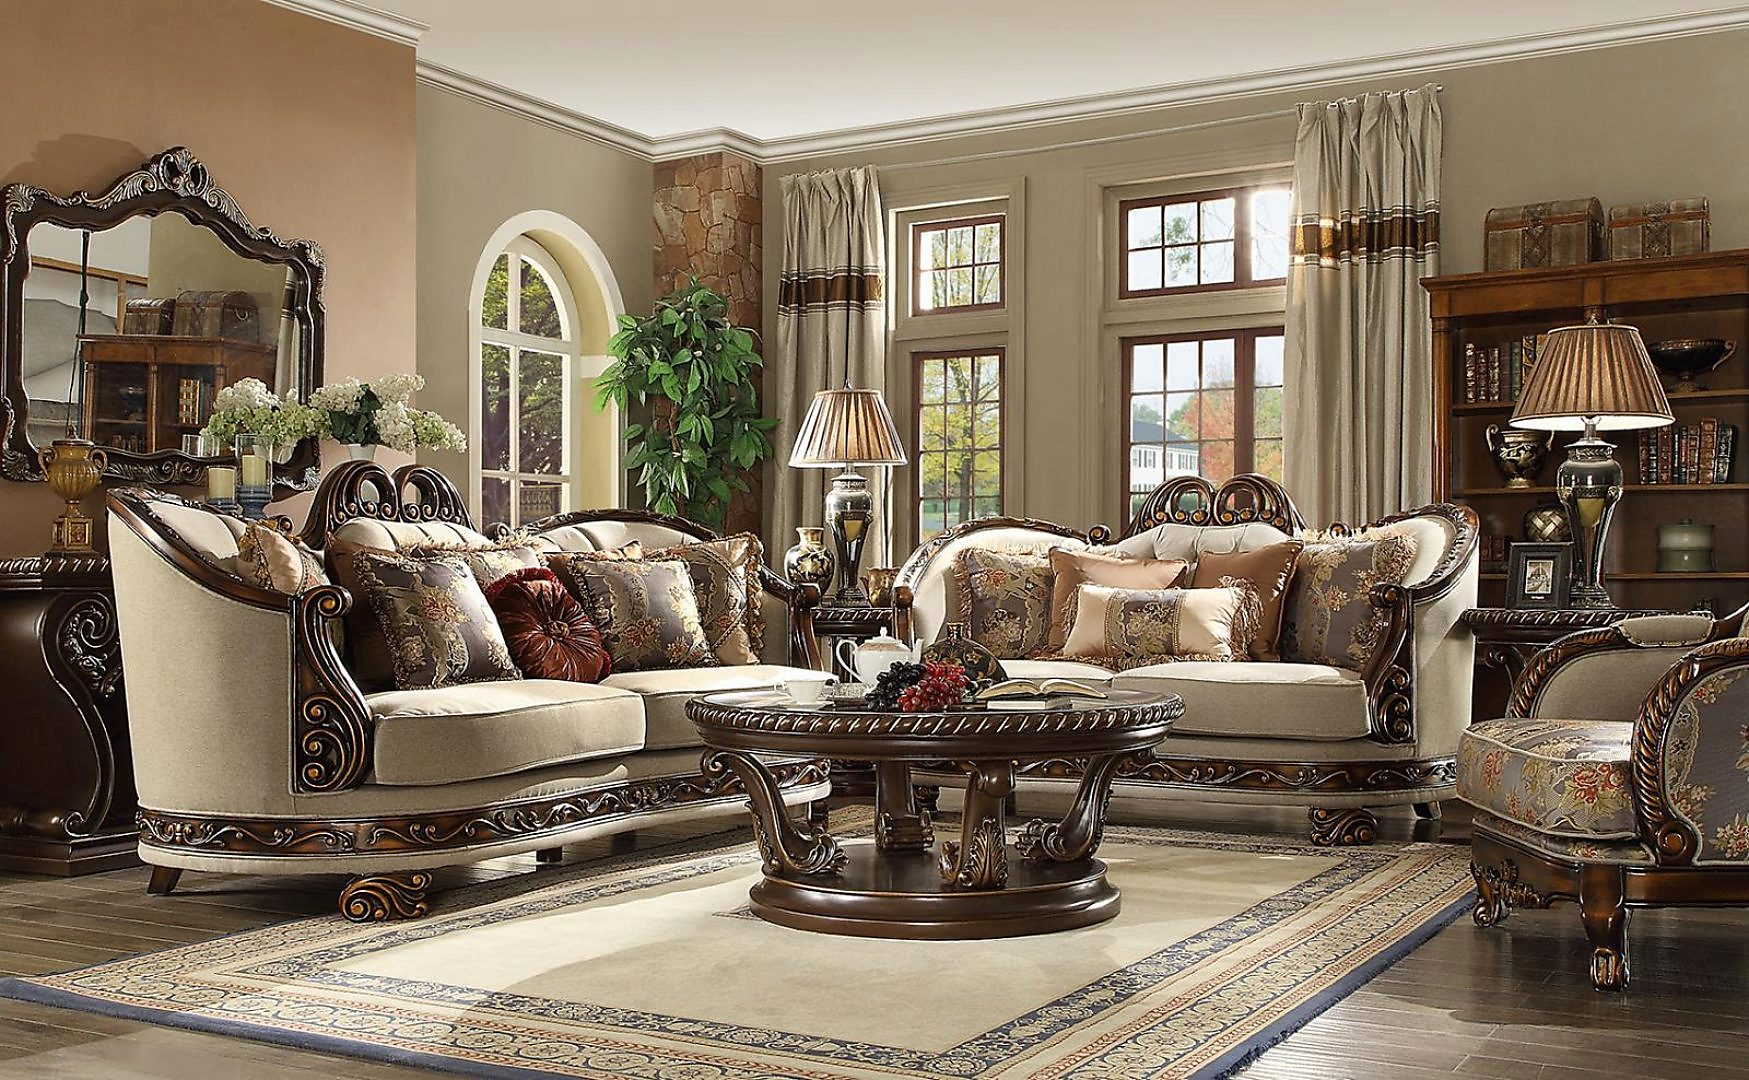 Traditional Hd-1623 Sofa Loveseat Chair Coffee Table End Table 5Pcs by Homey Design